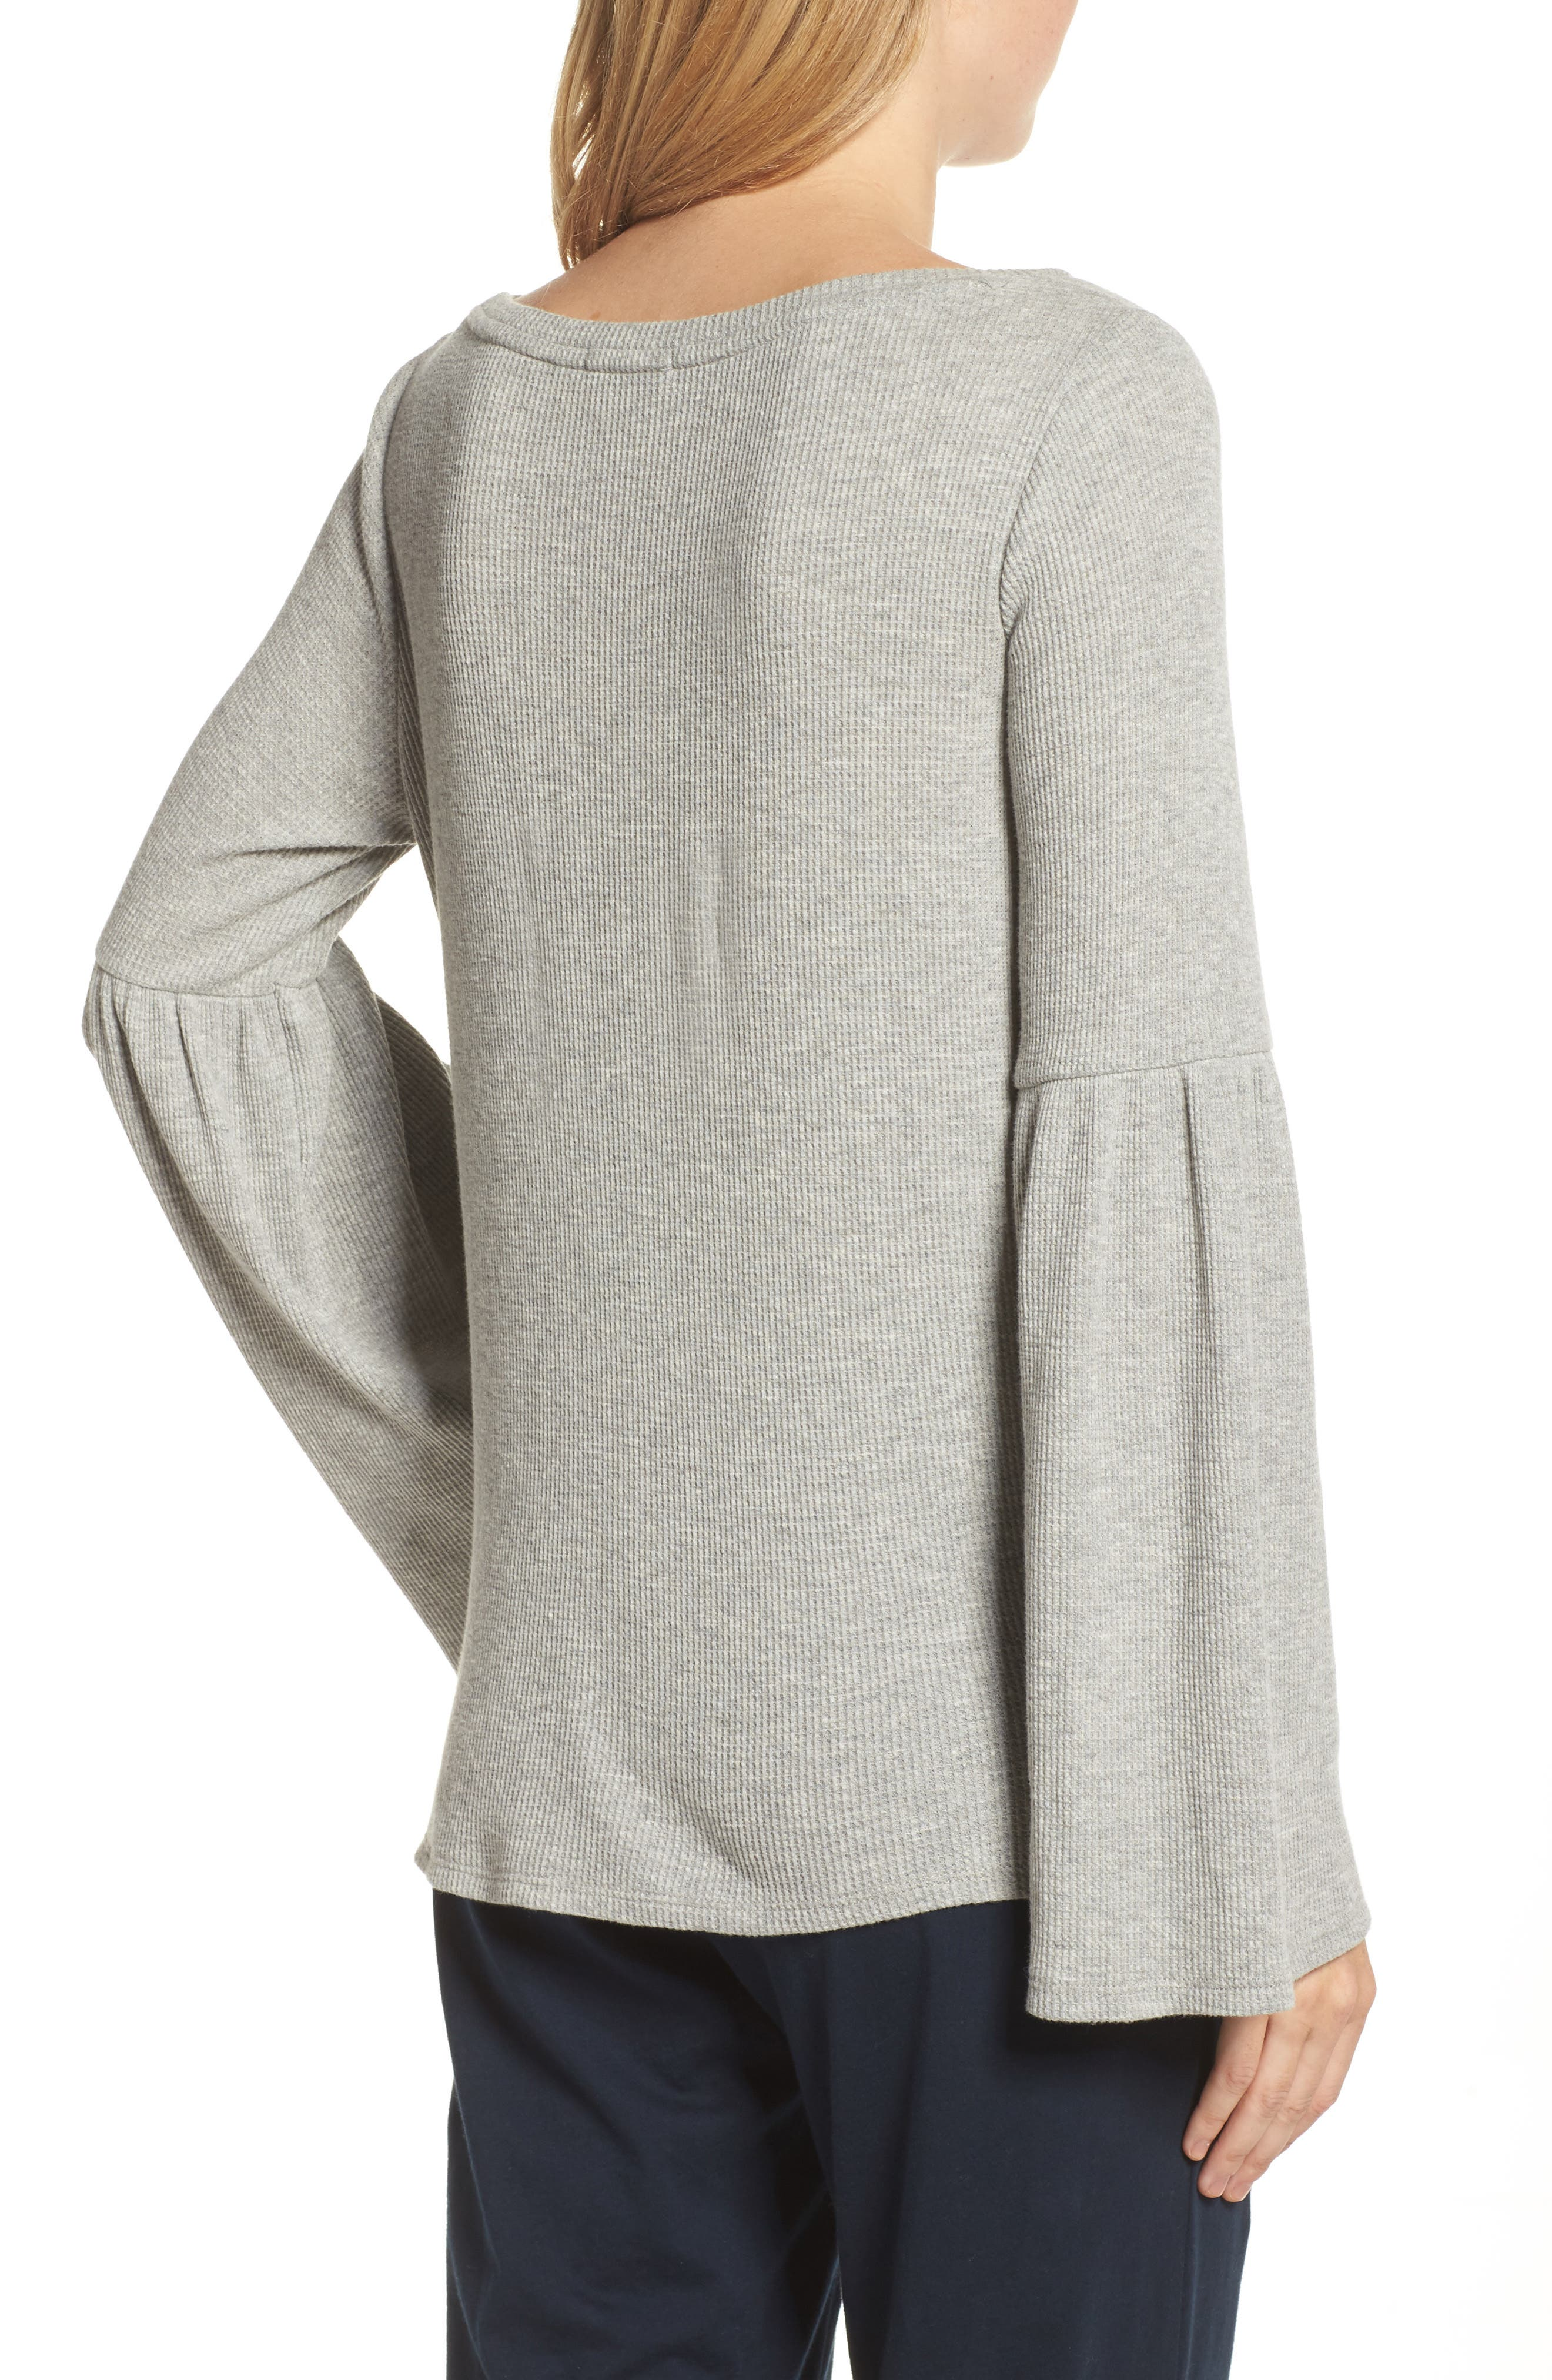 Imo Thermal Knit Tee,                             Alternate thumbnail 2, color,                             Heather Grey